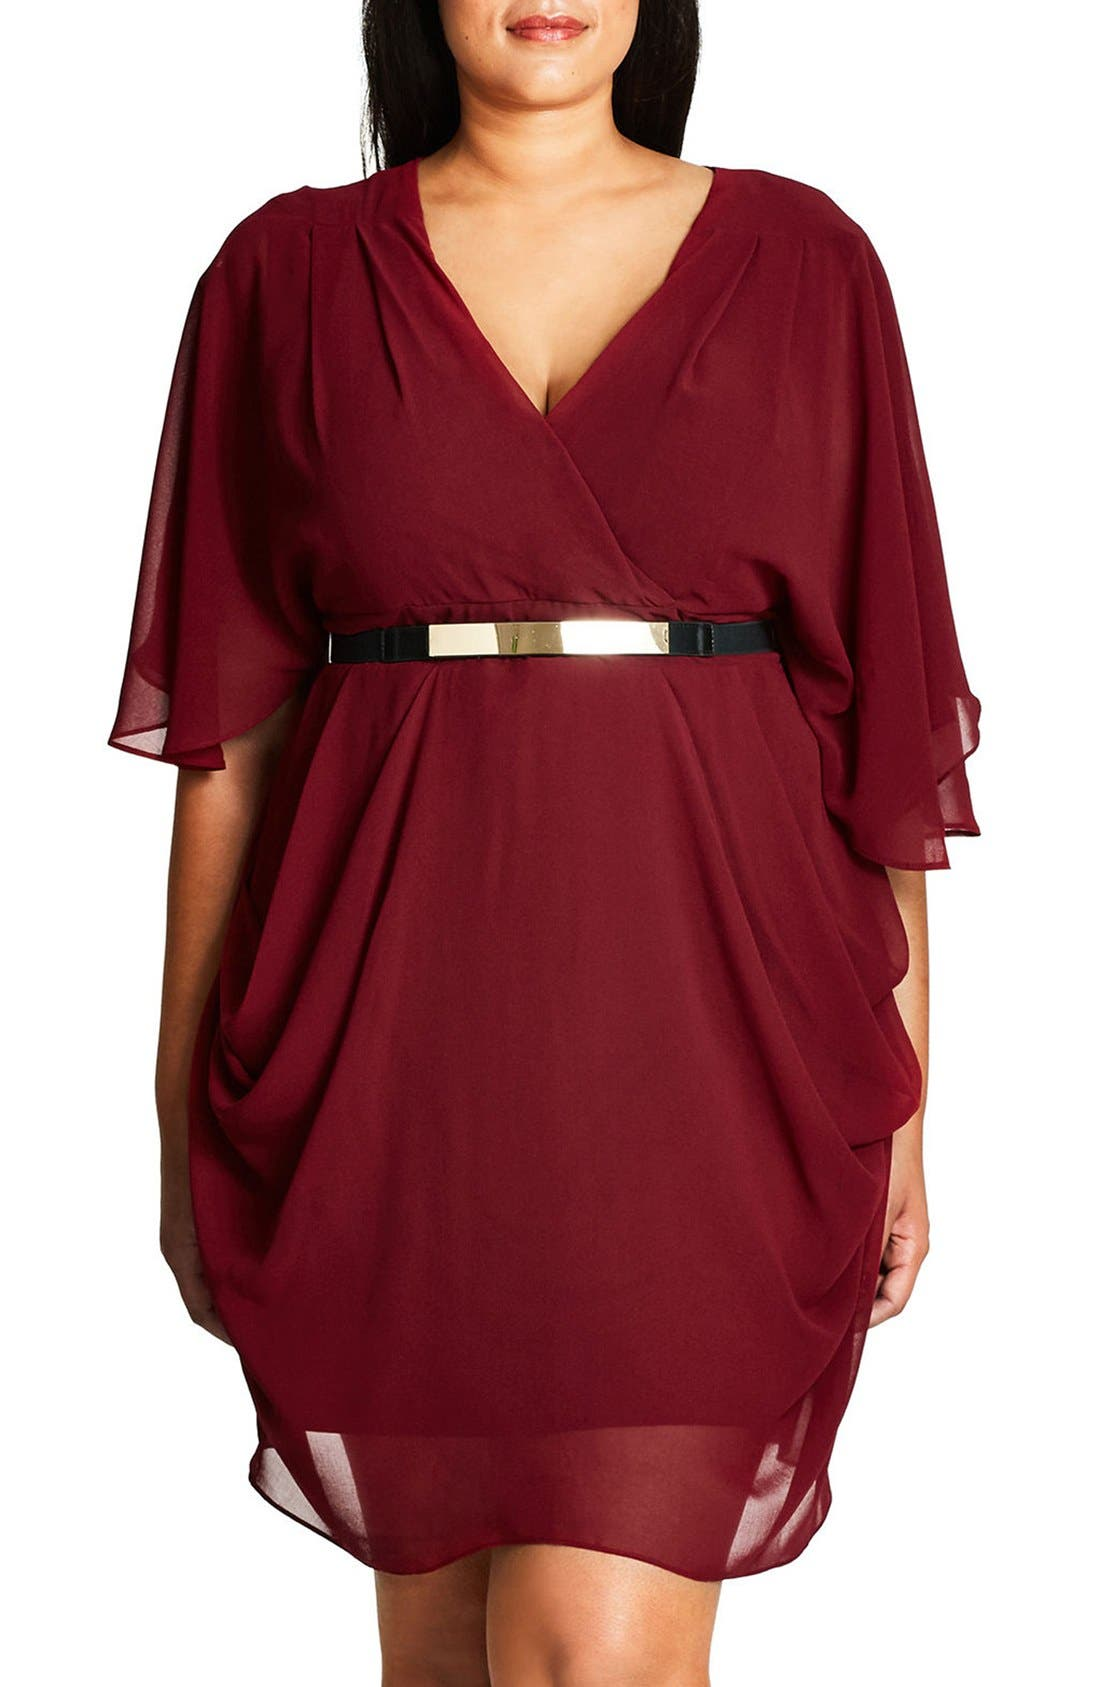 Alternate Image 1 Selected - City Chic Belted Chiffon Faux Wrap Dress (Plus Size)